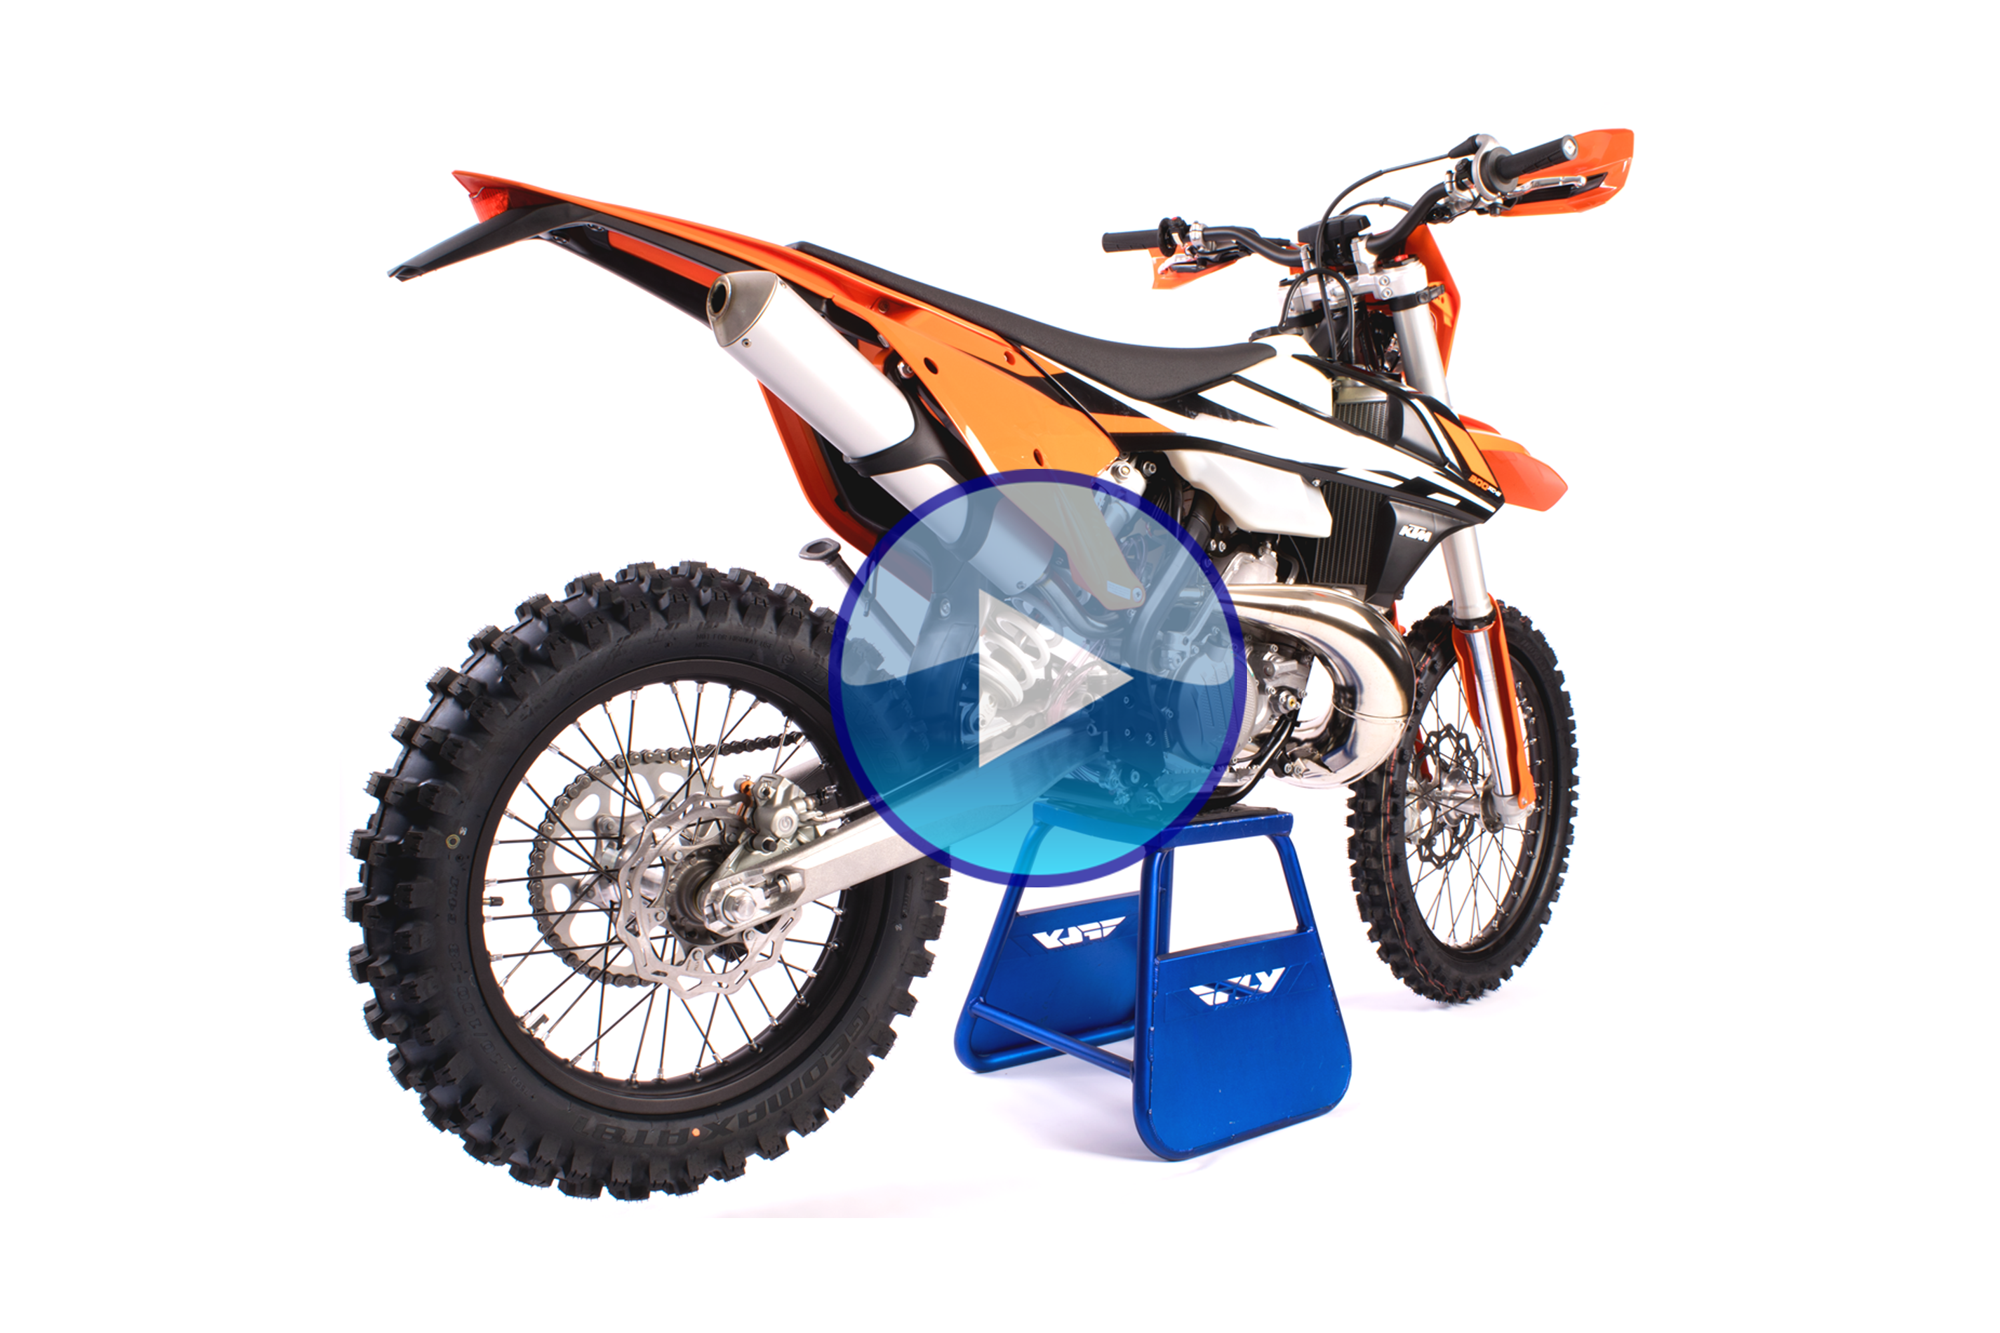 Video: our review of stock Xplor suspension